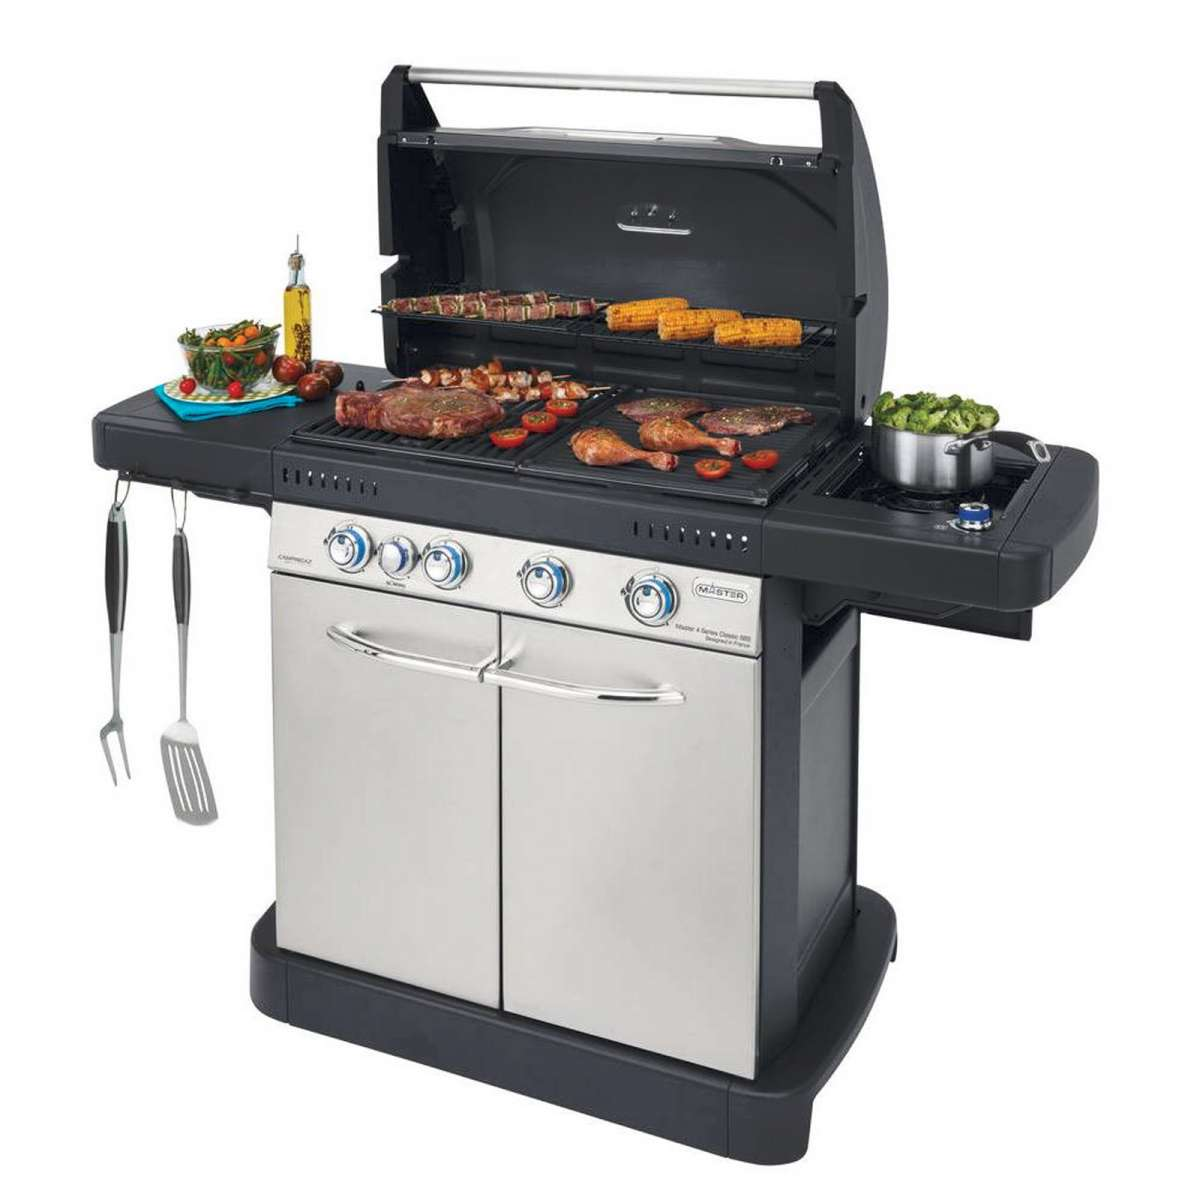 BARBECUE A GAS Campingaz Master 4 series Classic Sbs DUAL METANO/GPL